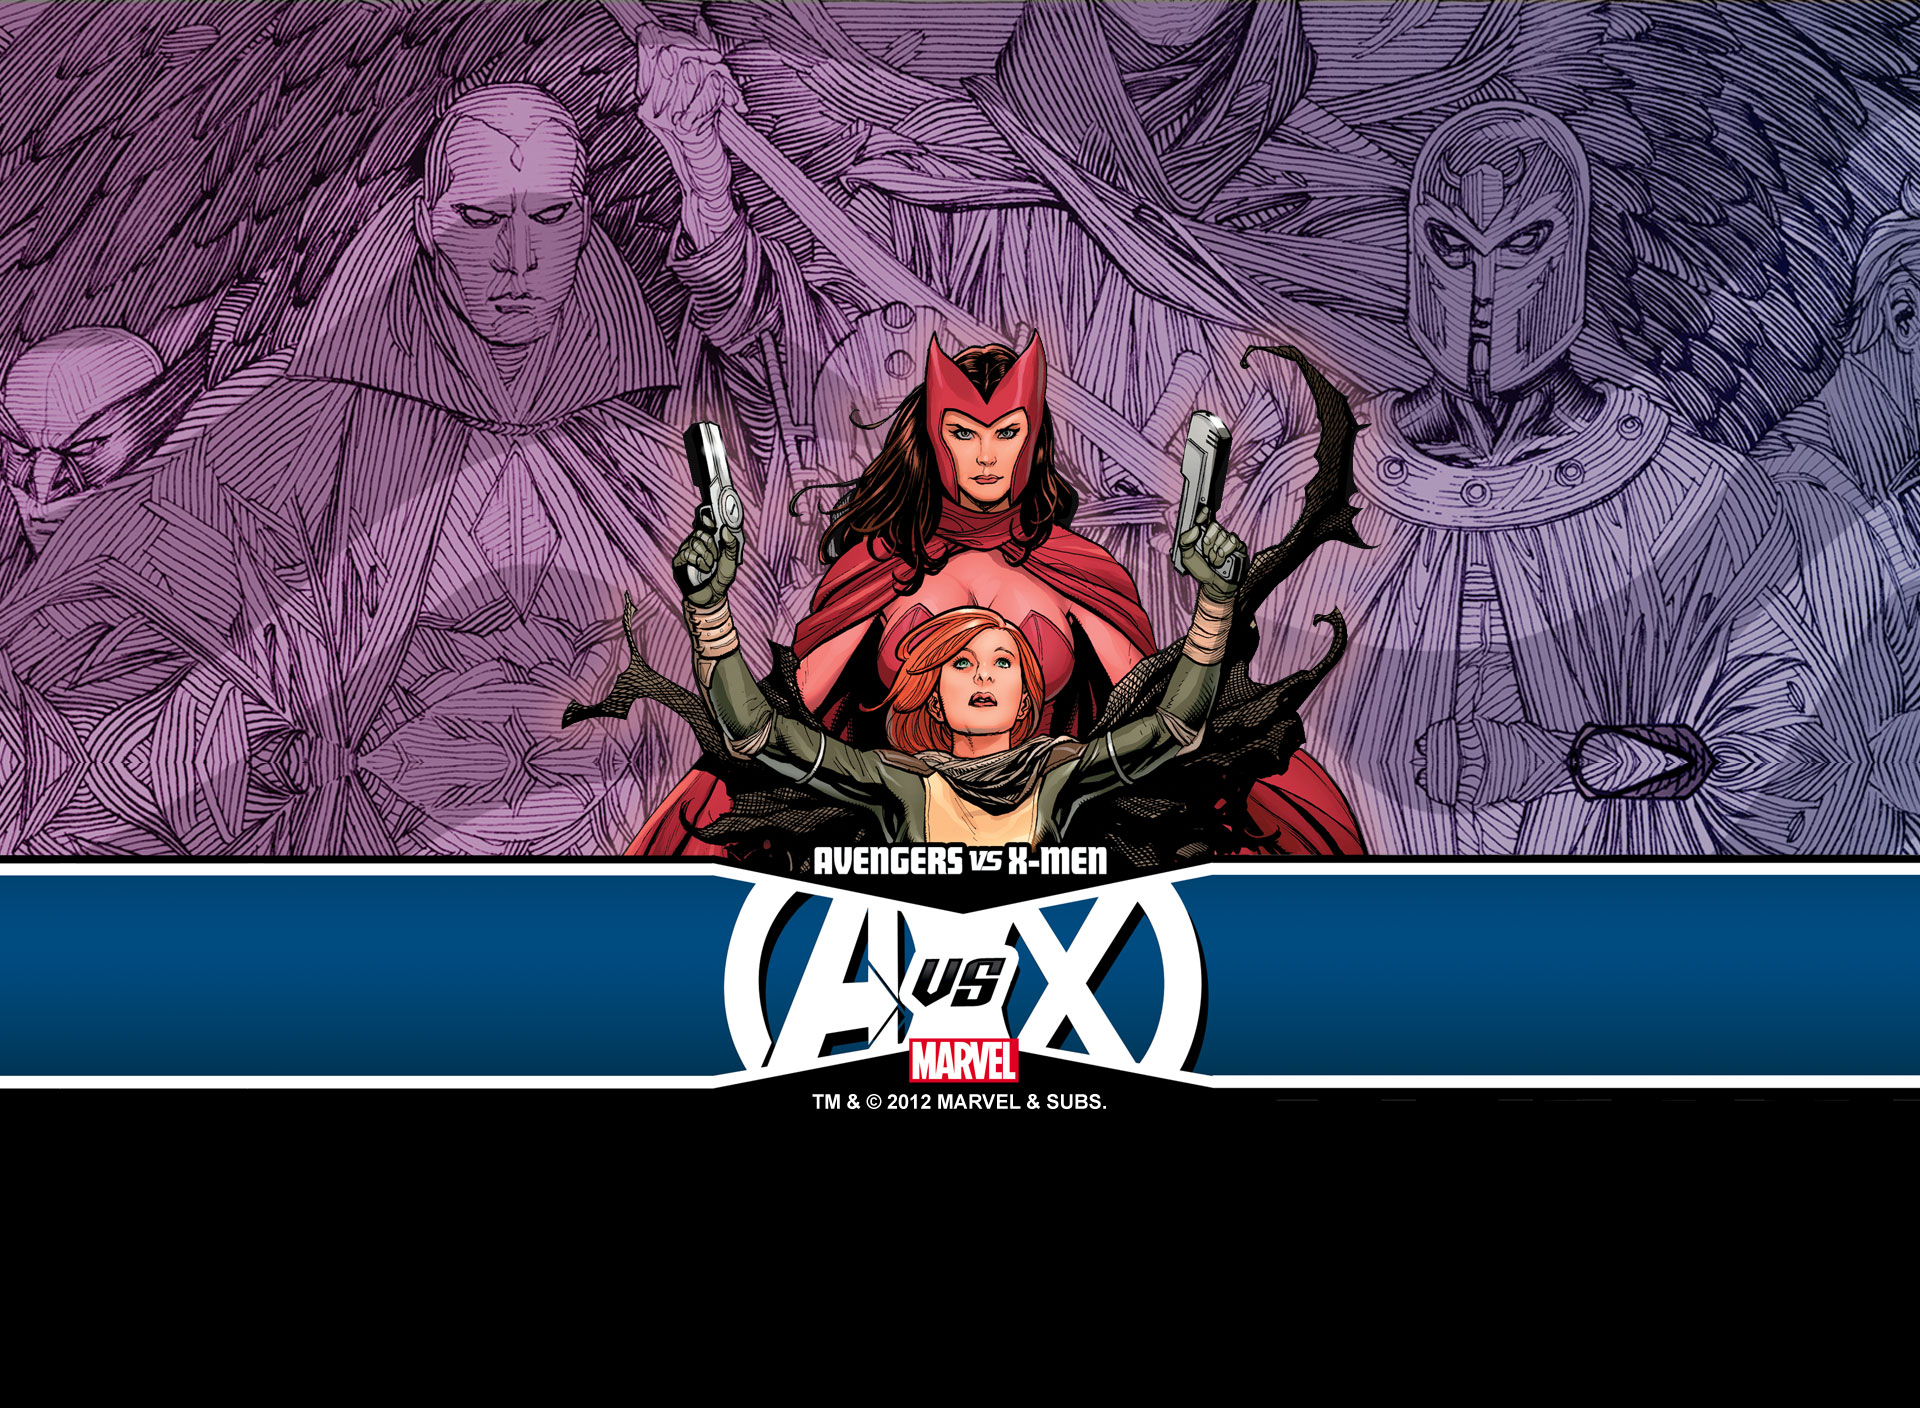 Avengers VS X-Men #0 (2012) Android 1920x1408 Wallpaper